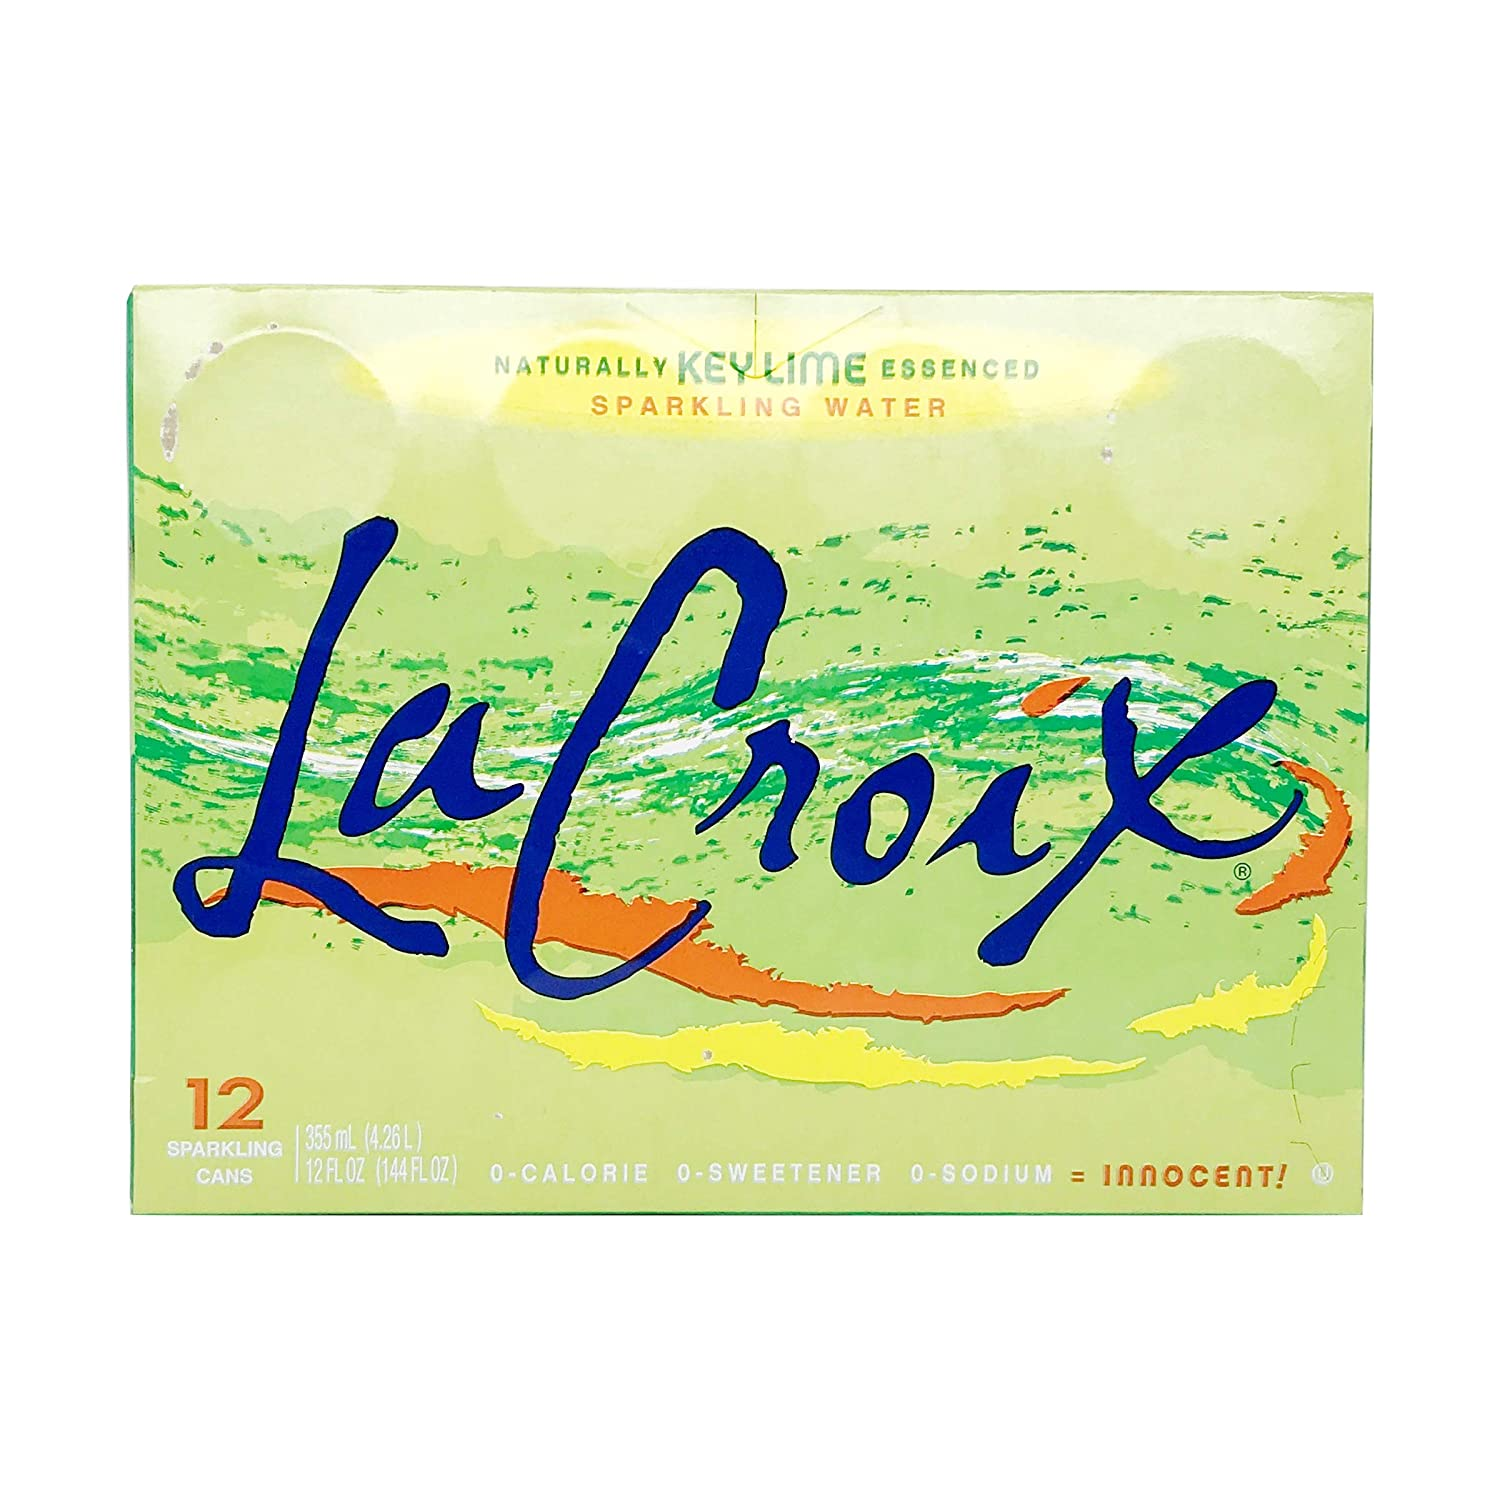 La Croix Sparkling Water Naturally Essenced Sparkling Water, Key Lime, 12 Fluid Ounce (Pack of 12)